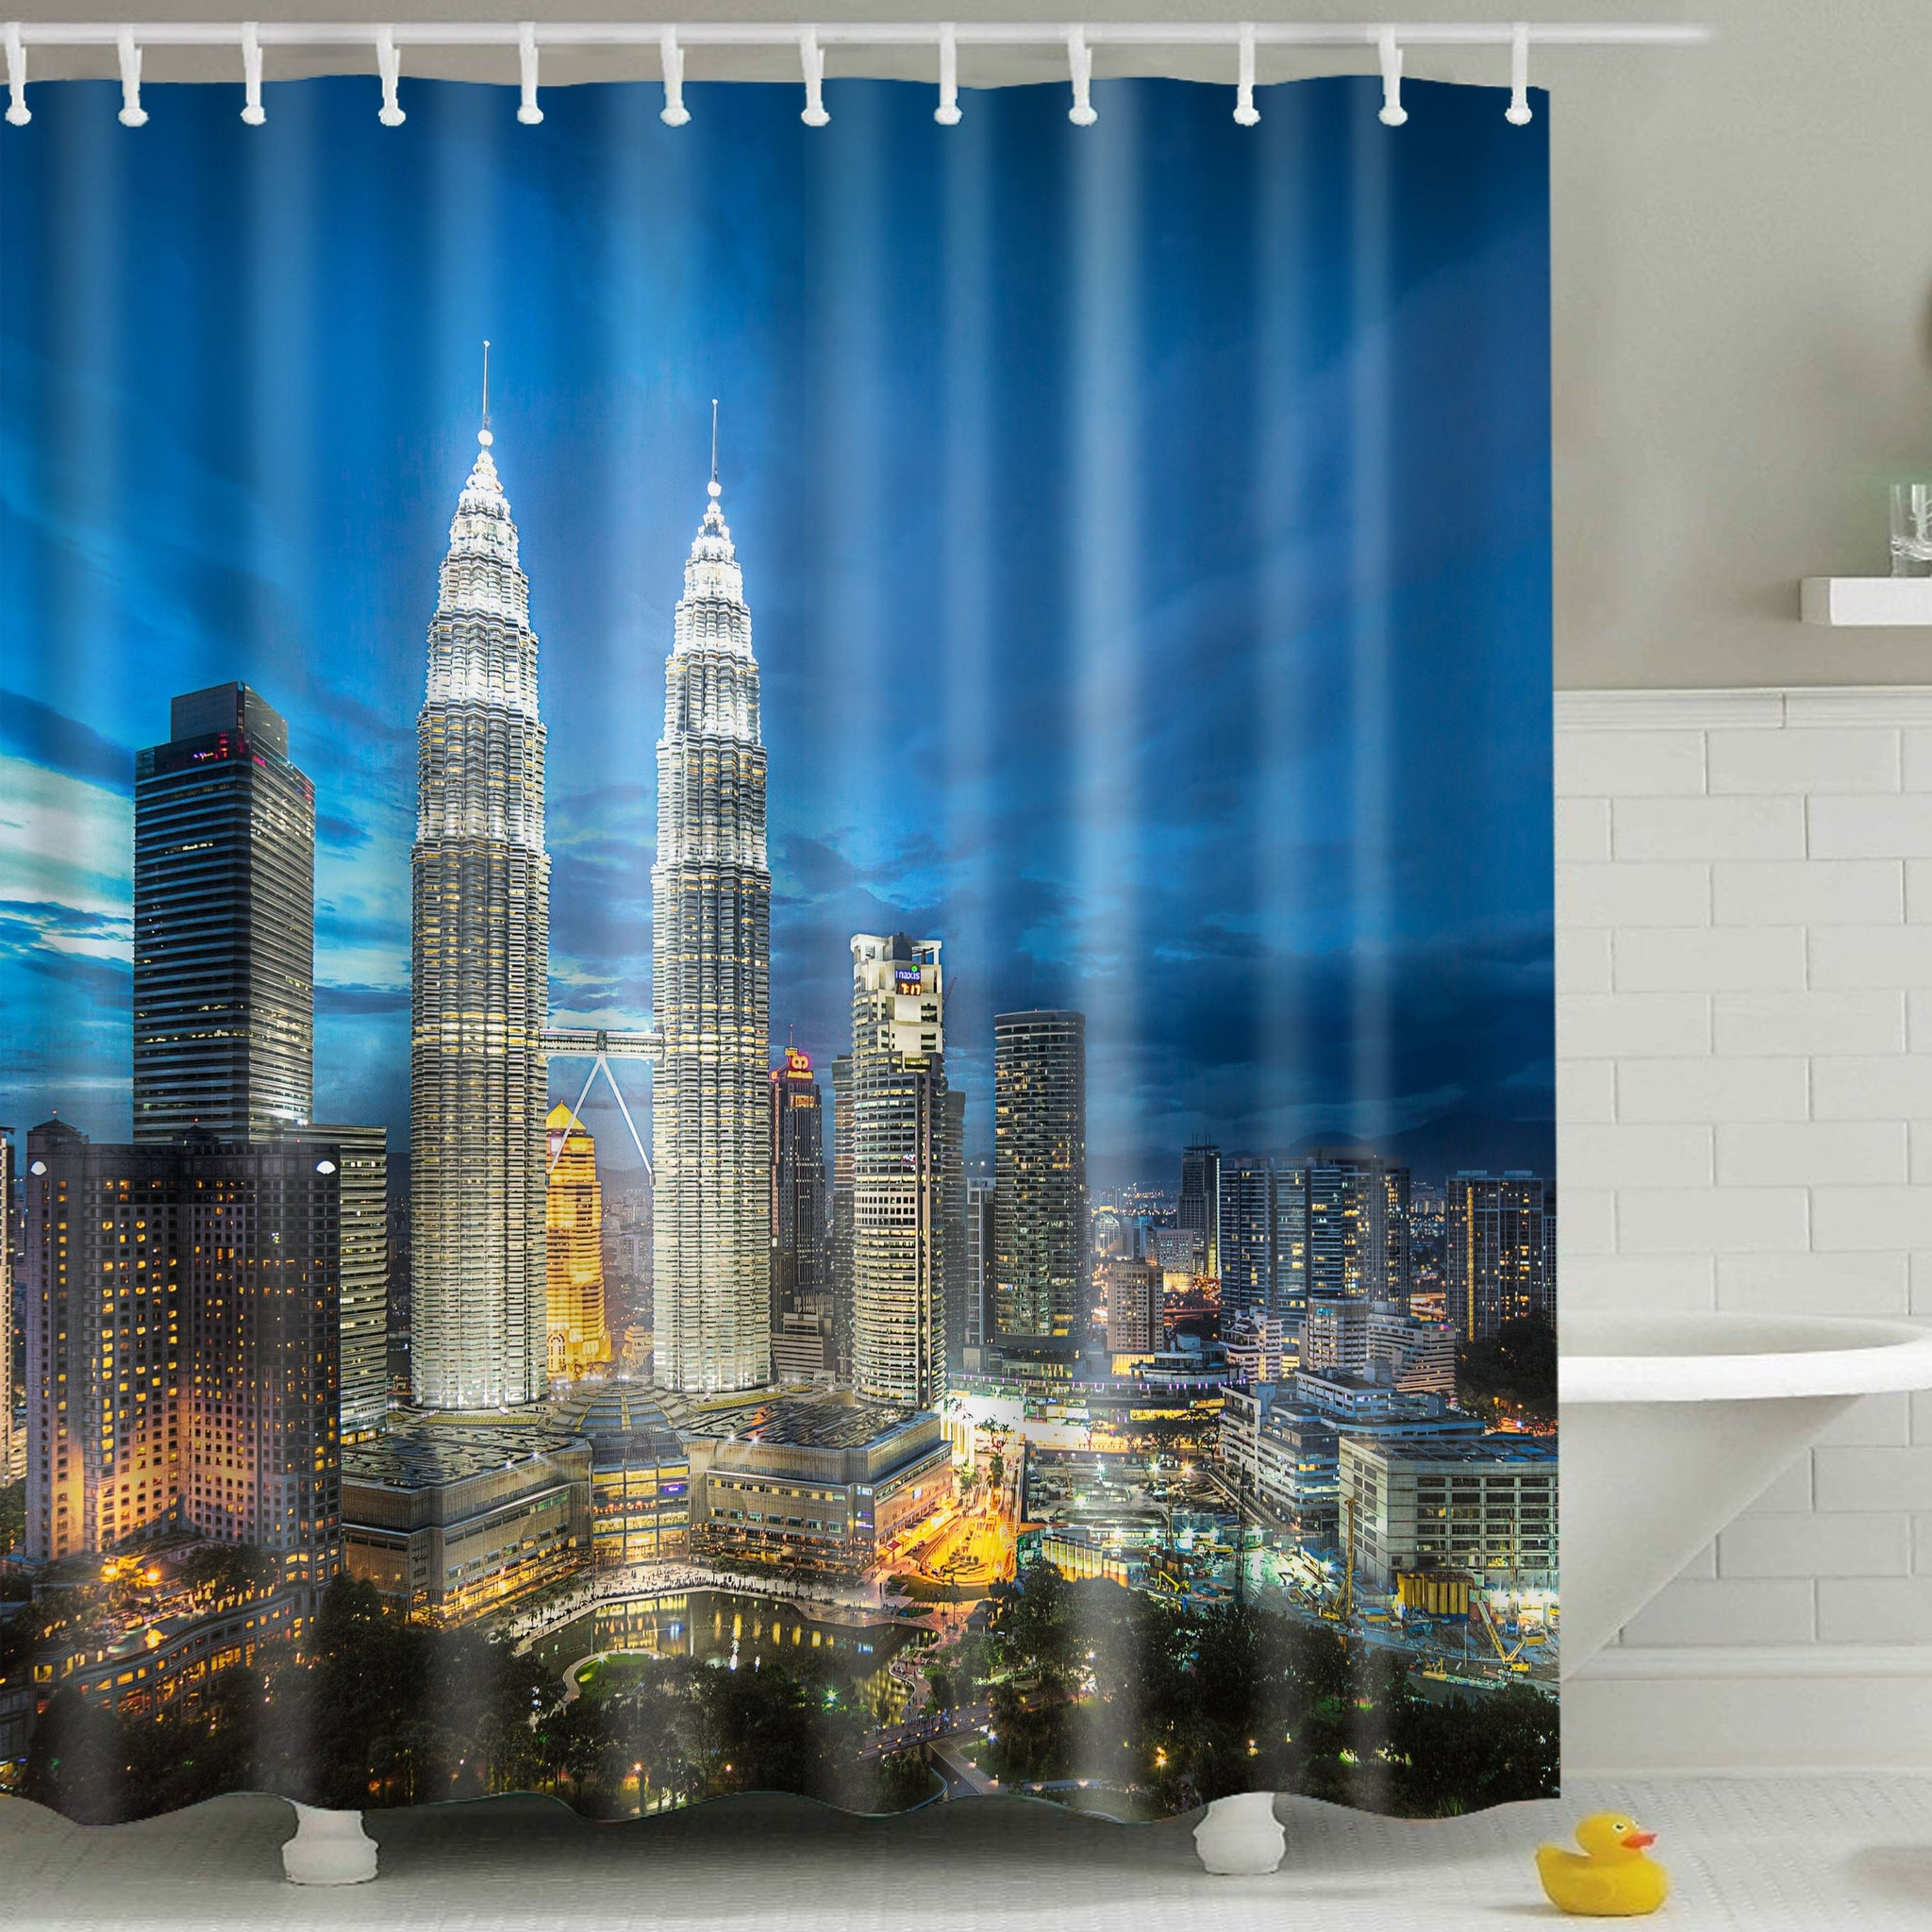 Skyline Building Cityscape Shower Curtain | GoJeek